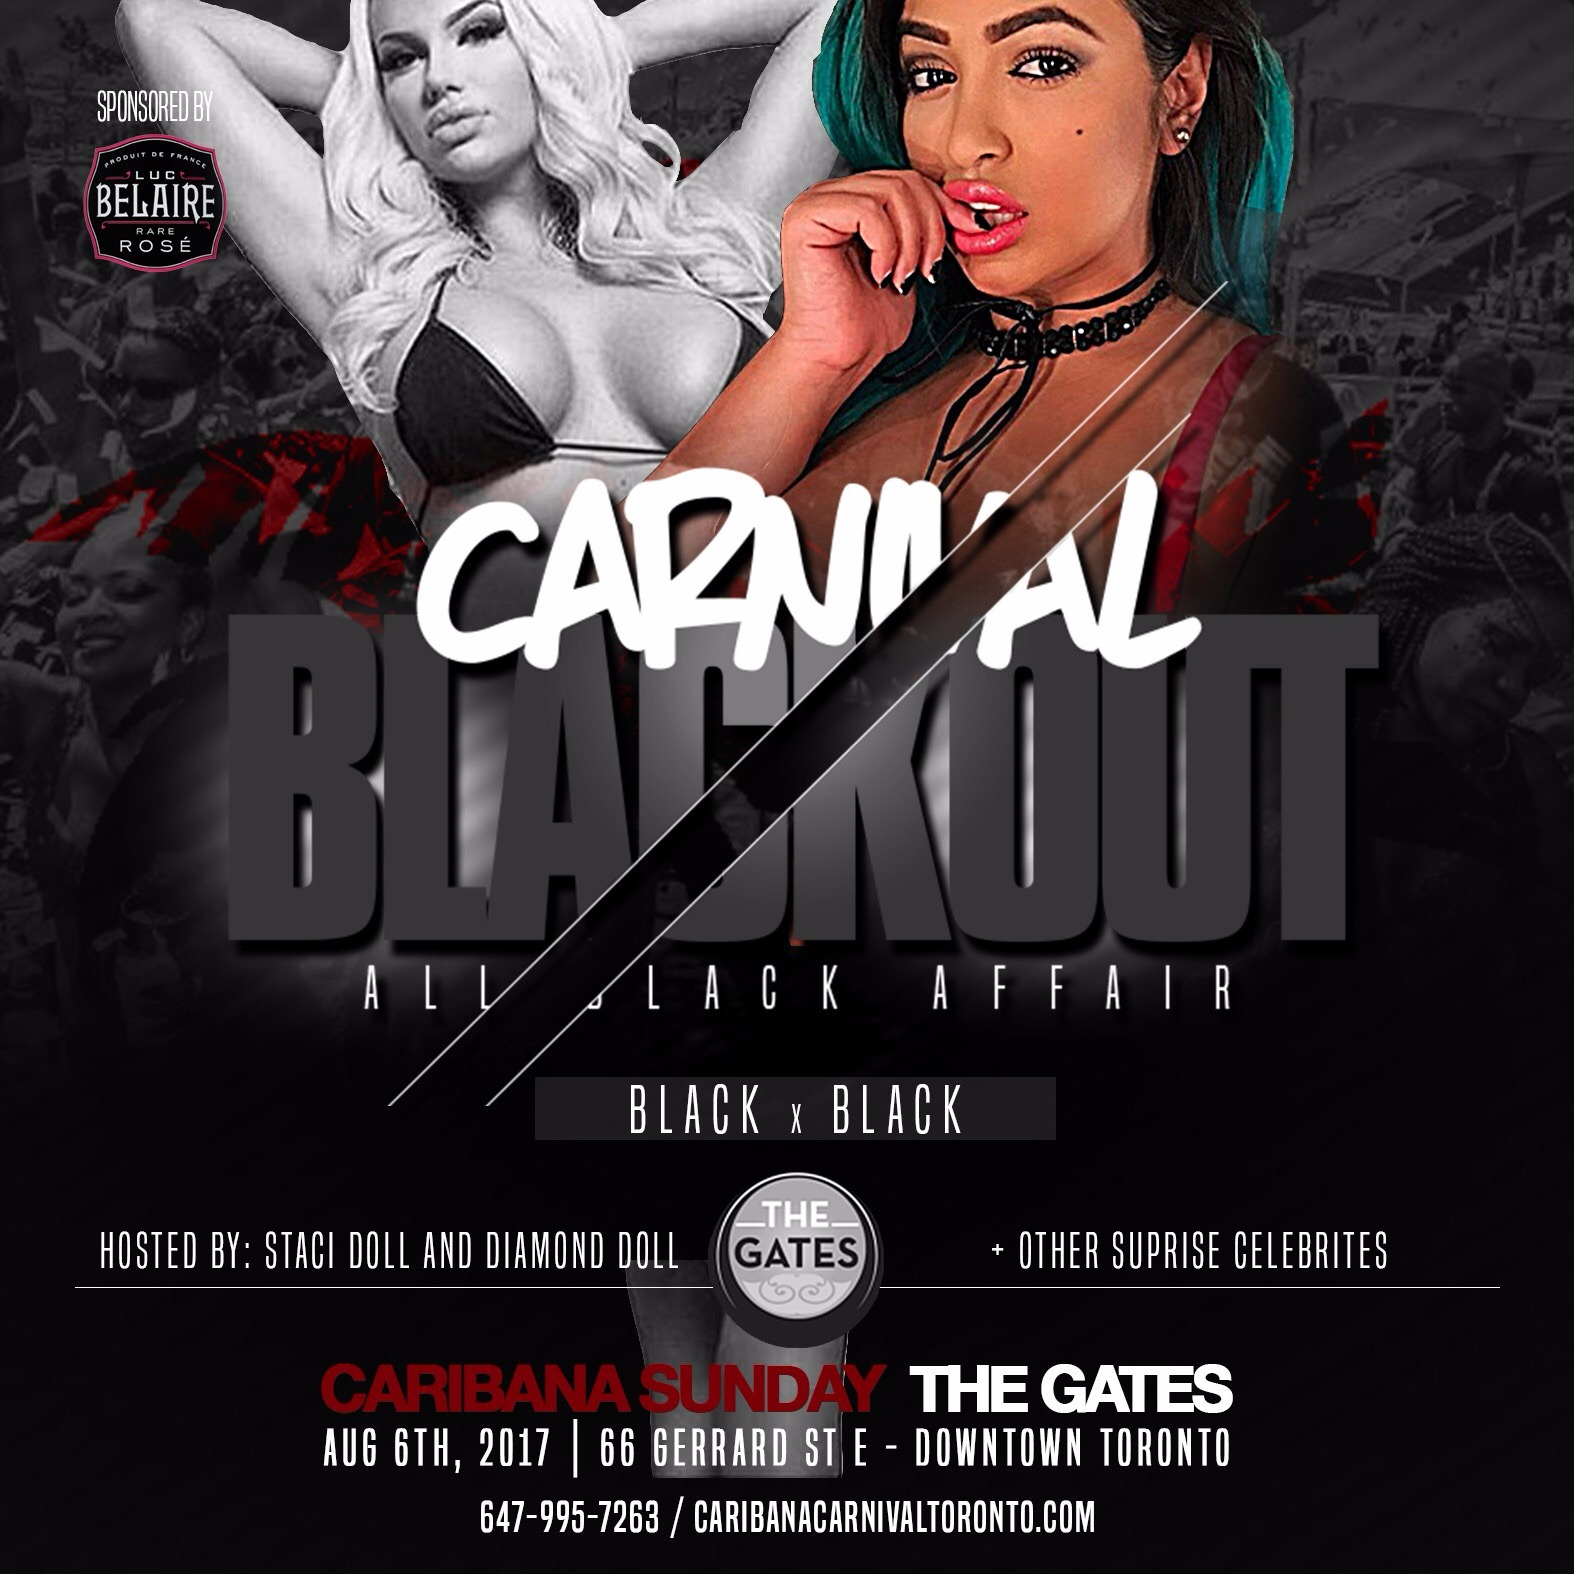 CARNIVAL BLACKOUT - ALL BLACK AFFAIR - BLACK X BLACK - Caribana Sunday